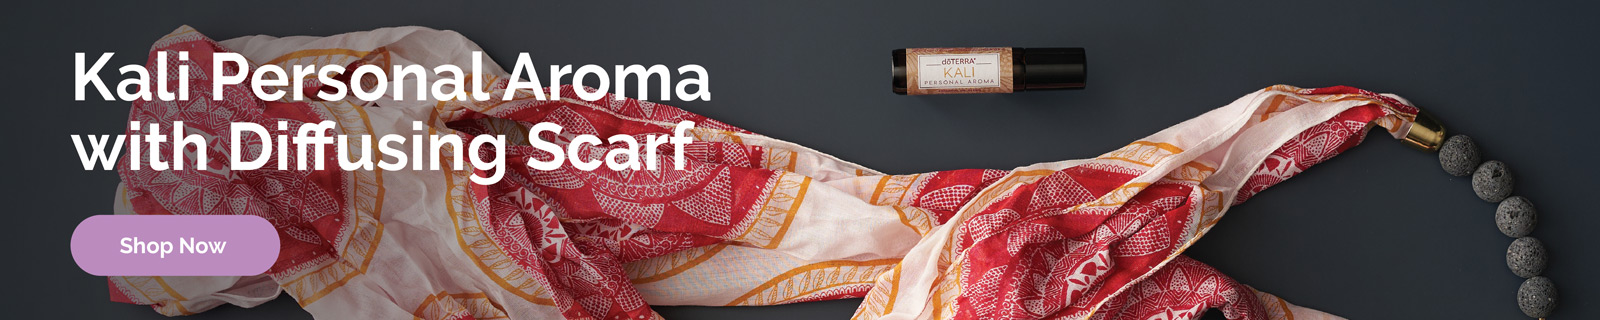 Check out the Kali India Inspired Personal Aroma with Diffusing Scarf here.